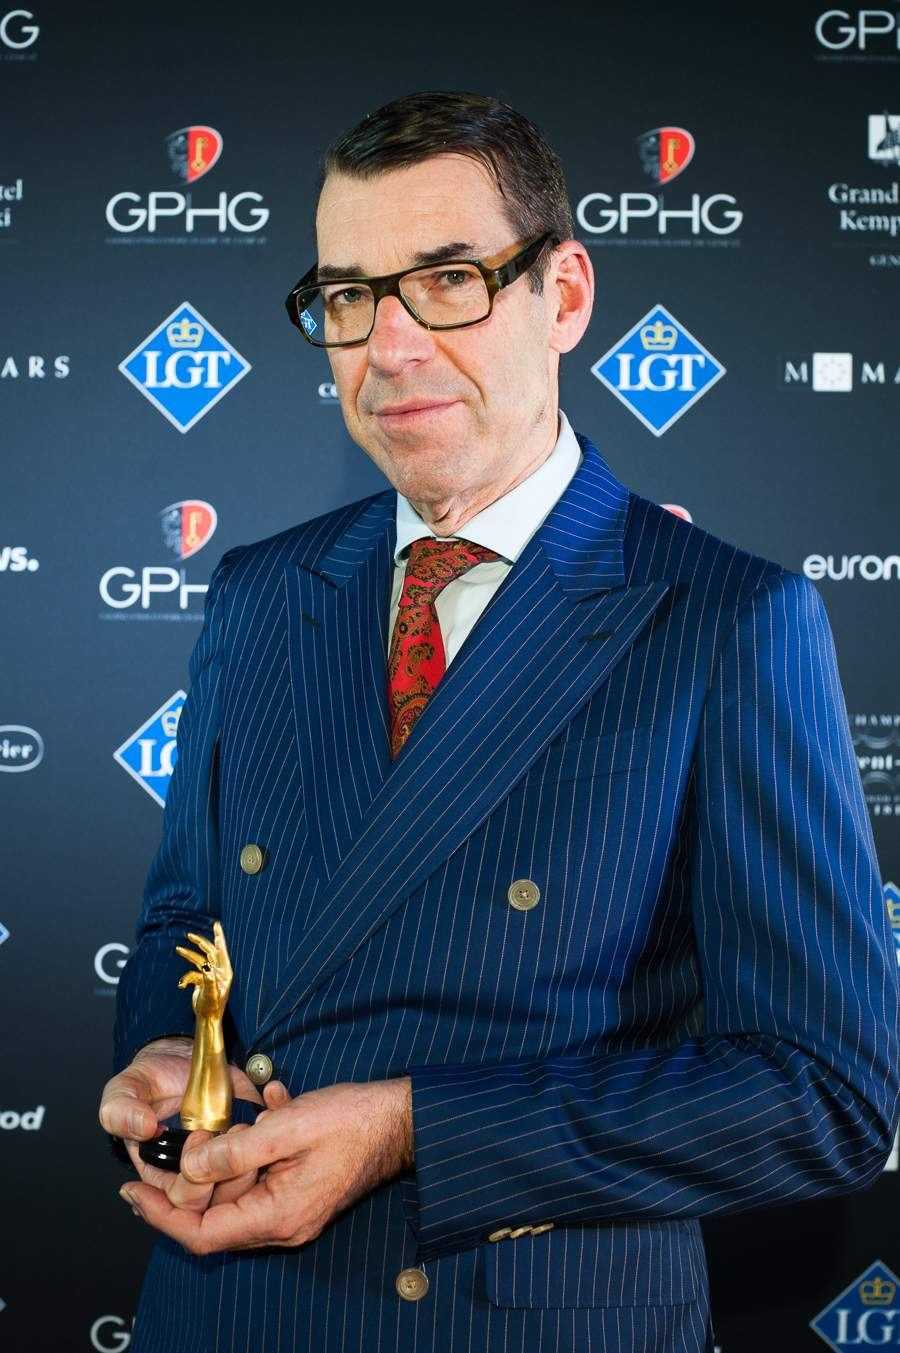 Christian Selmoni, Style and Heritage Director at Vacheron Constantin